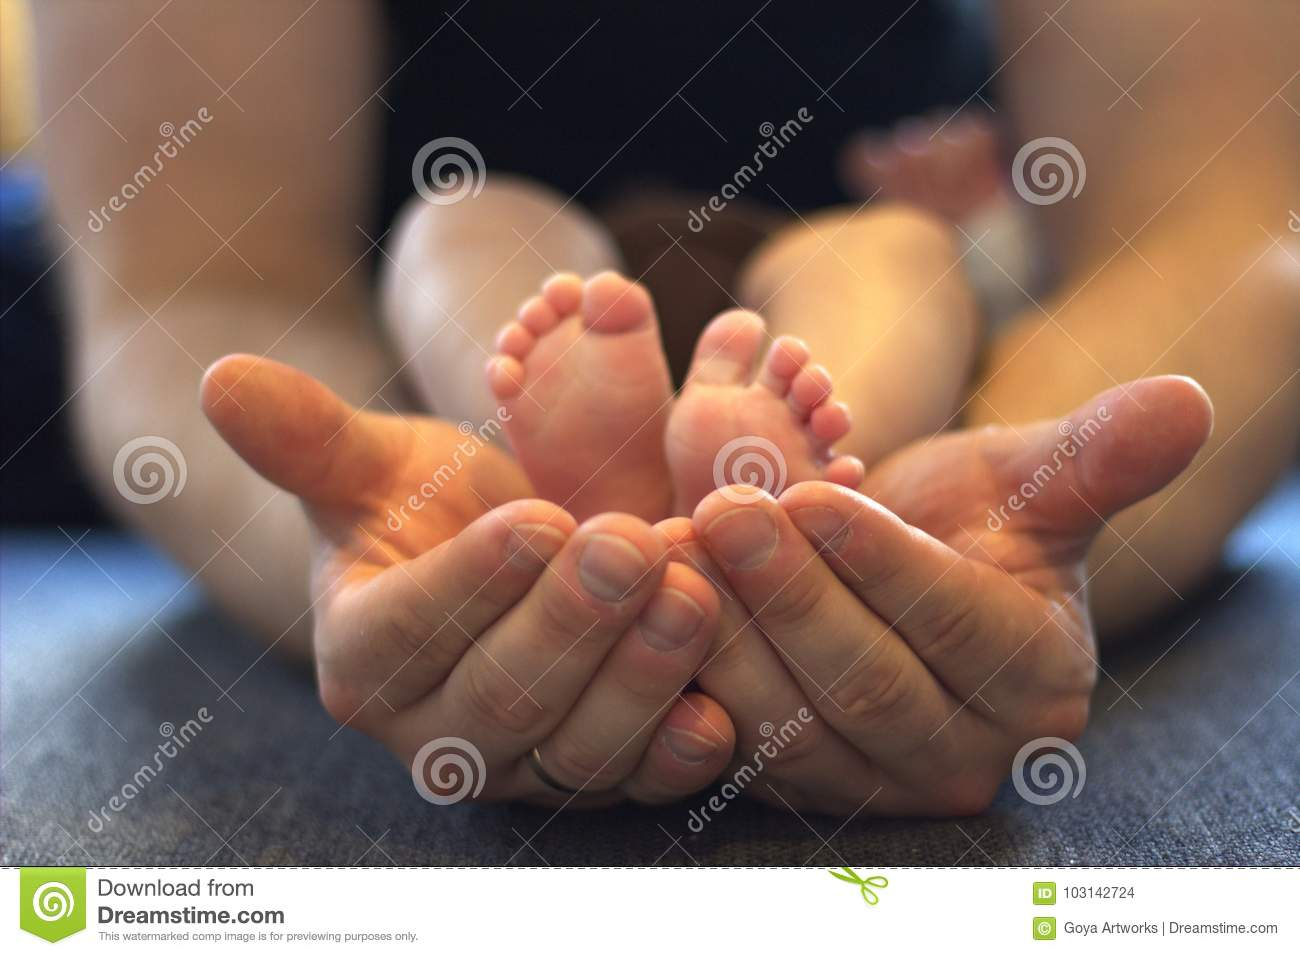 Baby feet and hands stock photo. Image of innocent, little - 103142724